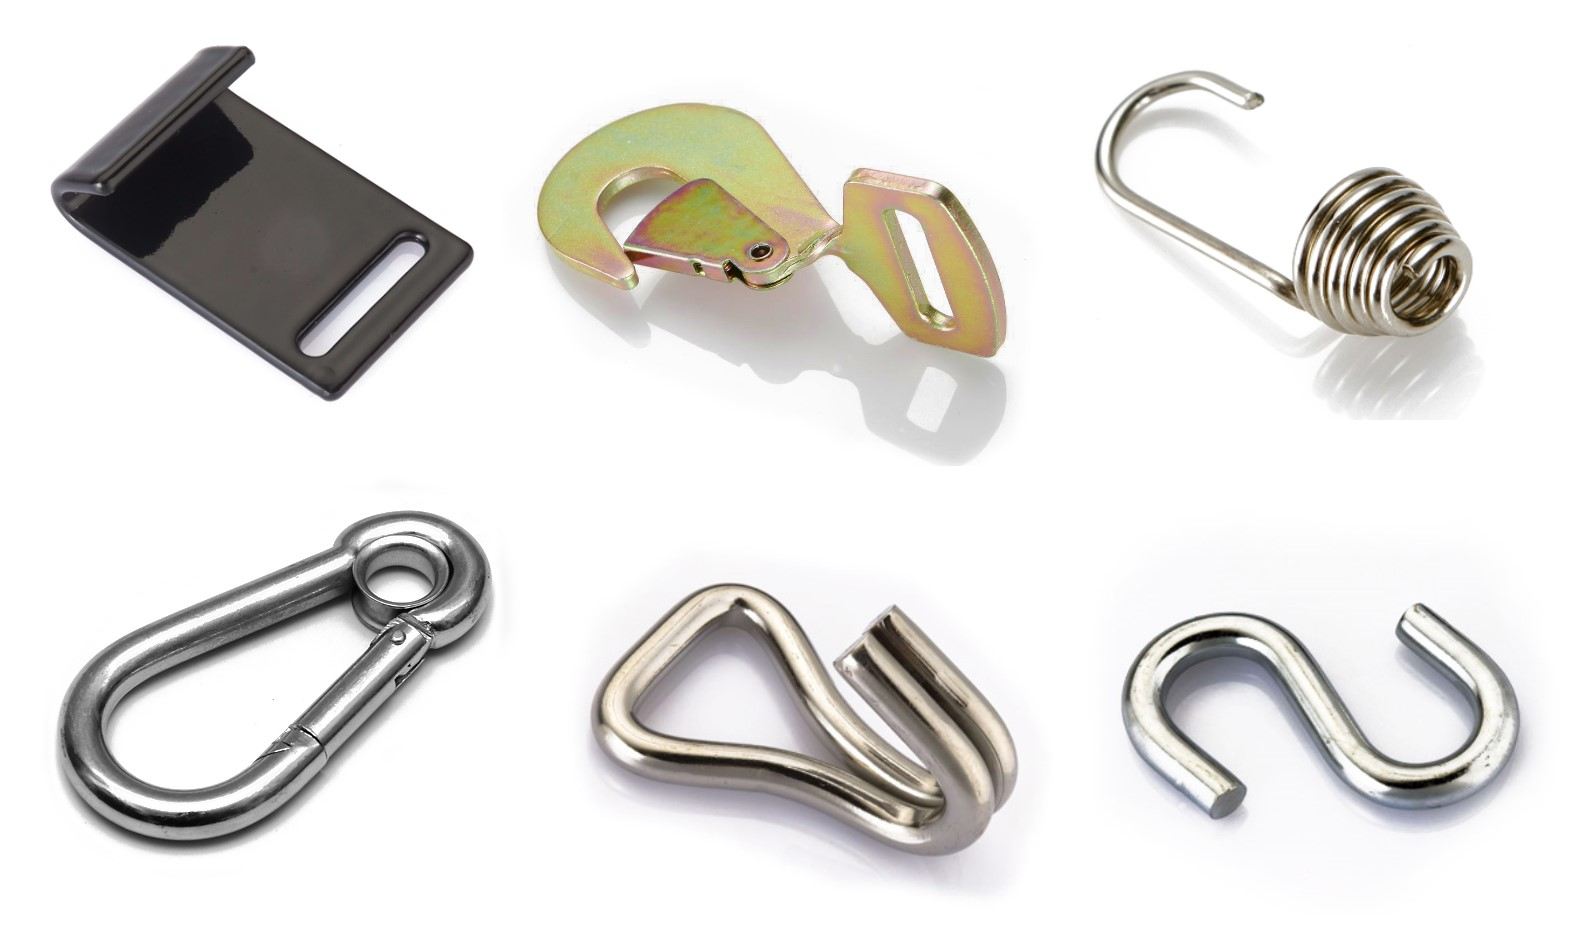 4x4 Pick Up Hook for Auto Exterior Accessories made by Win Chance Metal Co., LTD. 鈞成金屬股份有限公司 - MatchSupplier.com